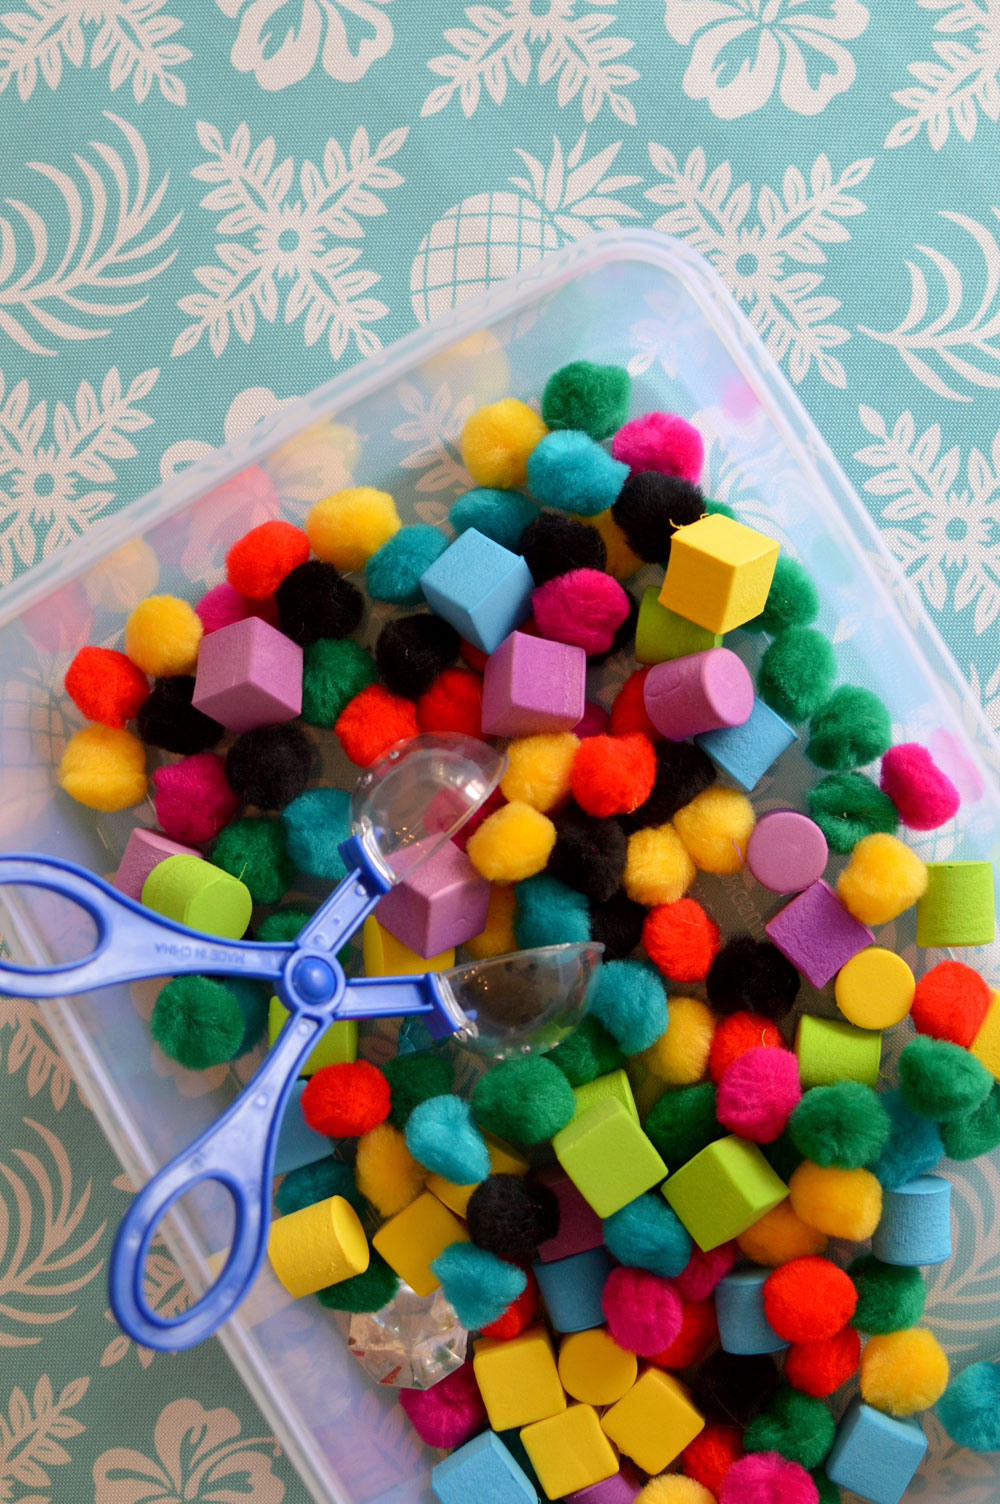 Playing with Pom Poms sensory toddler activity - Mommy Scene